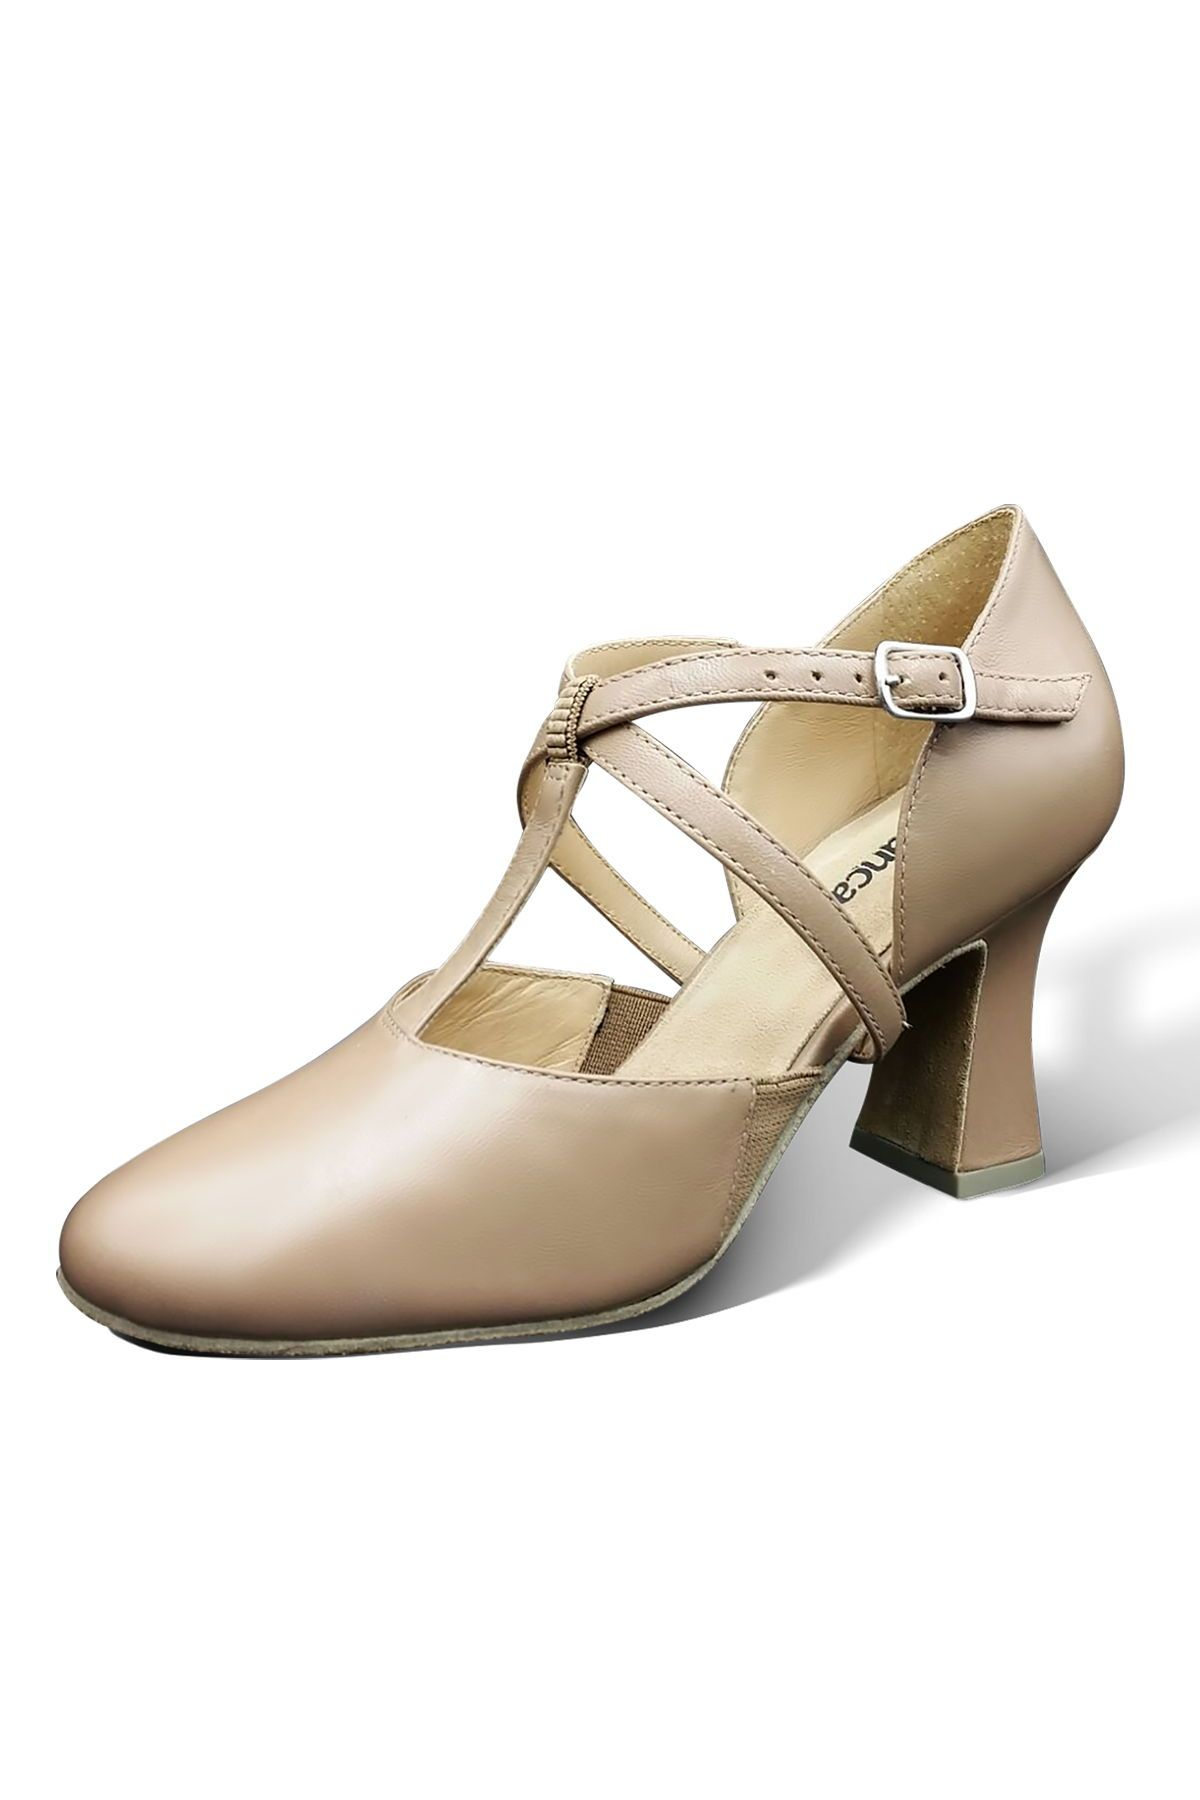 ad7f8b34bcb This So Danca Broadway Cabaret T-strap 3 inch heel shoe will set you apart  in class and onstage.